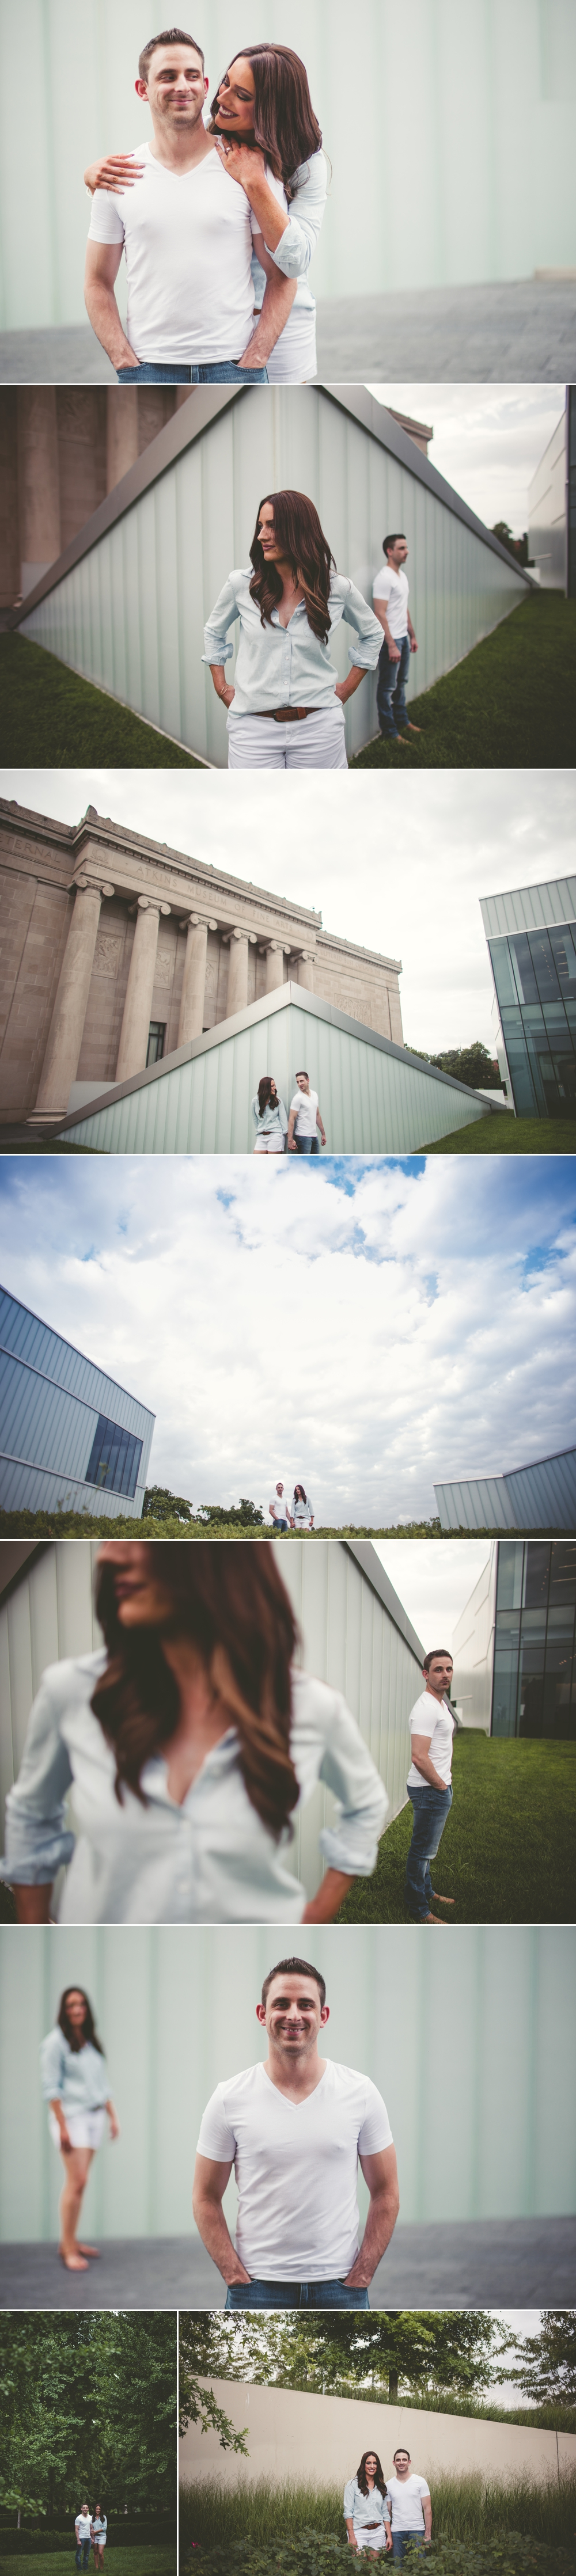 jason_domingues_photography_best_kansas_city_photograper_engagement_session_kc_1